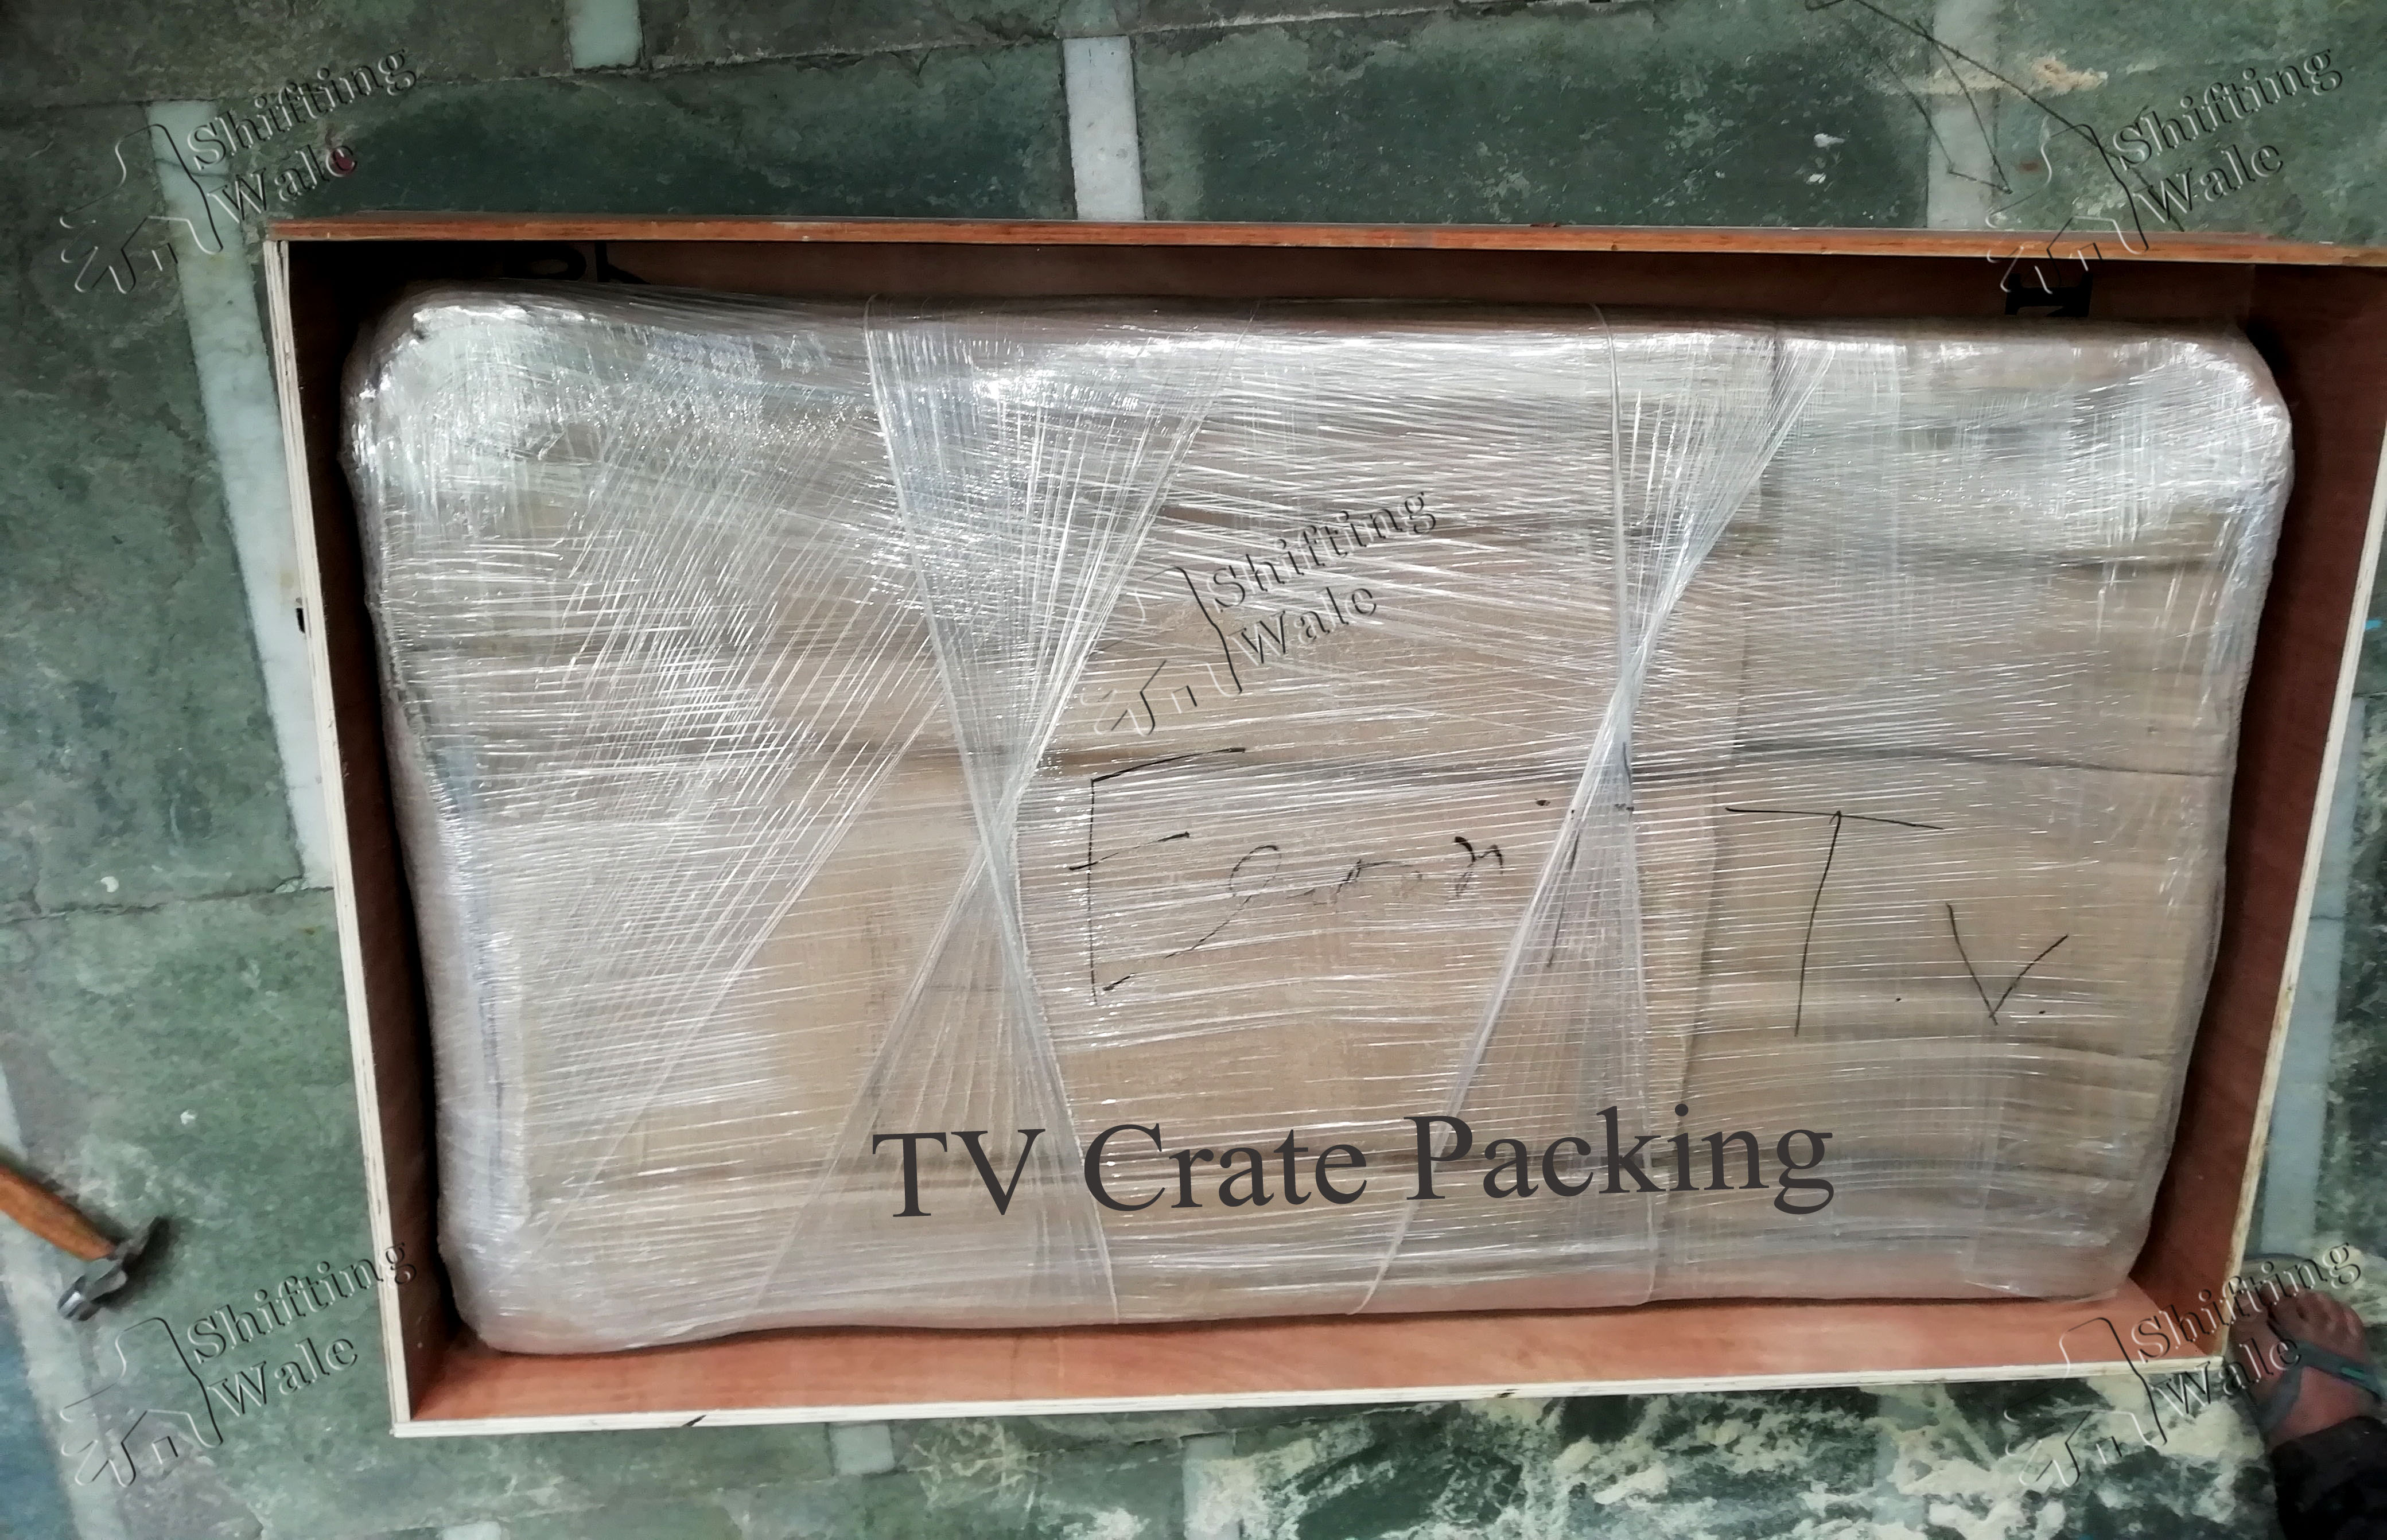 LCD TV Wooden Crate Packing